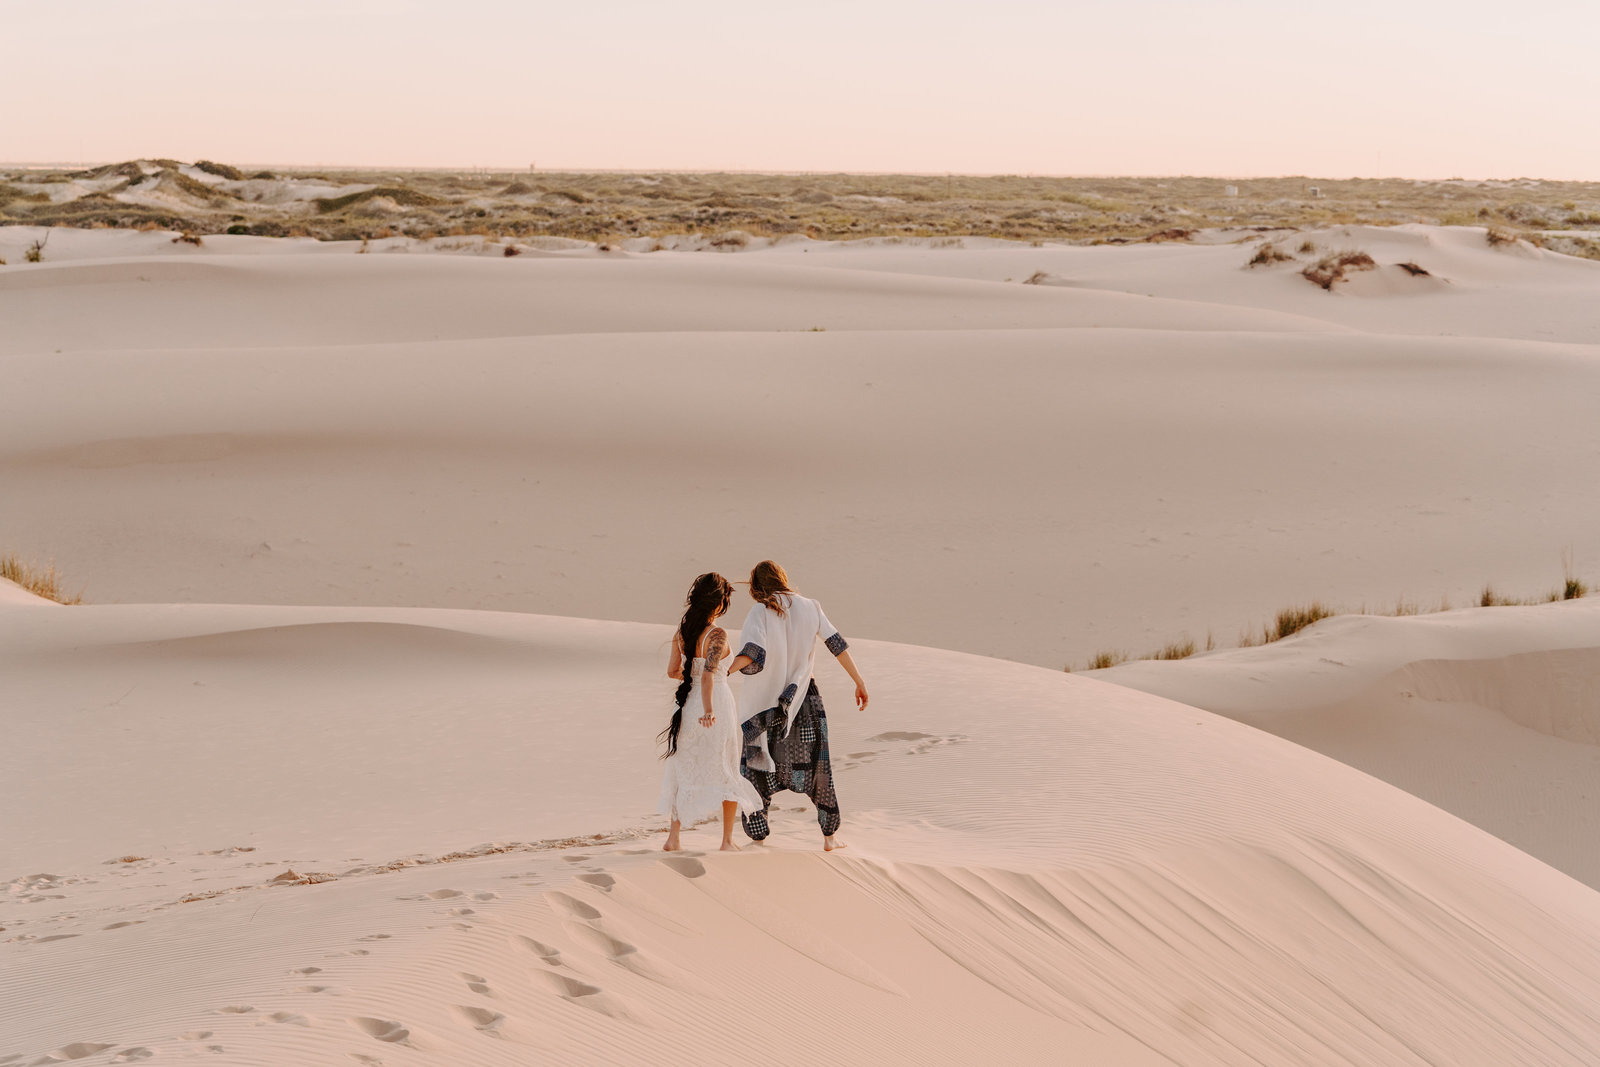 morocco-desert-elopement-adventurous-sand-dunes-monahans-sydney-and-ryan-photography-35